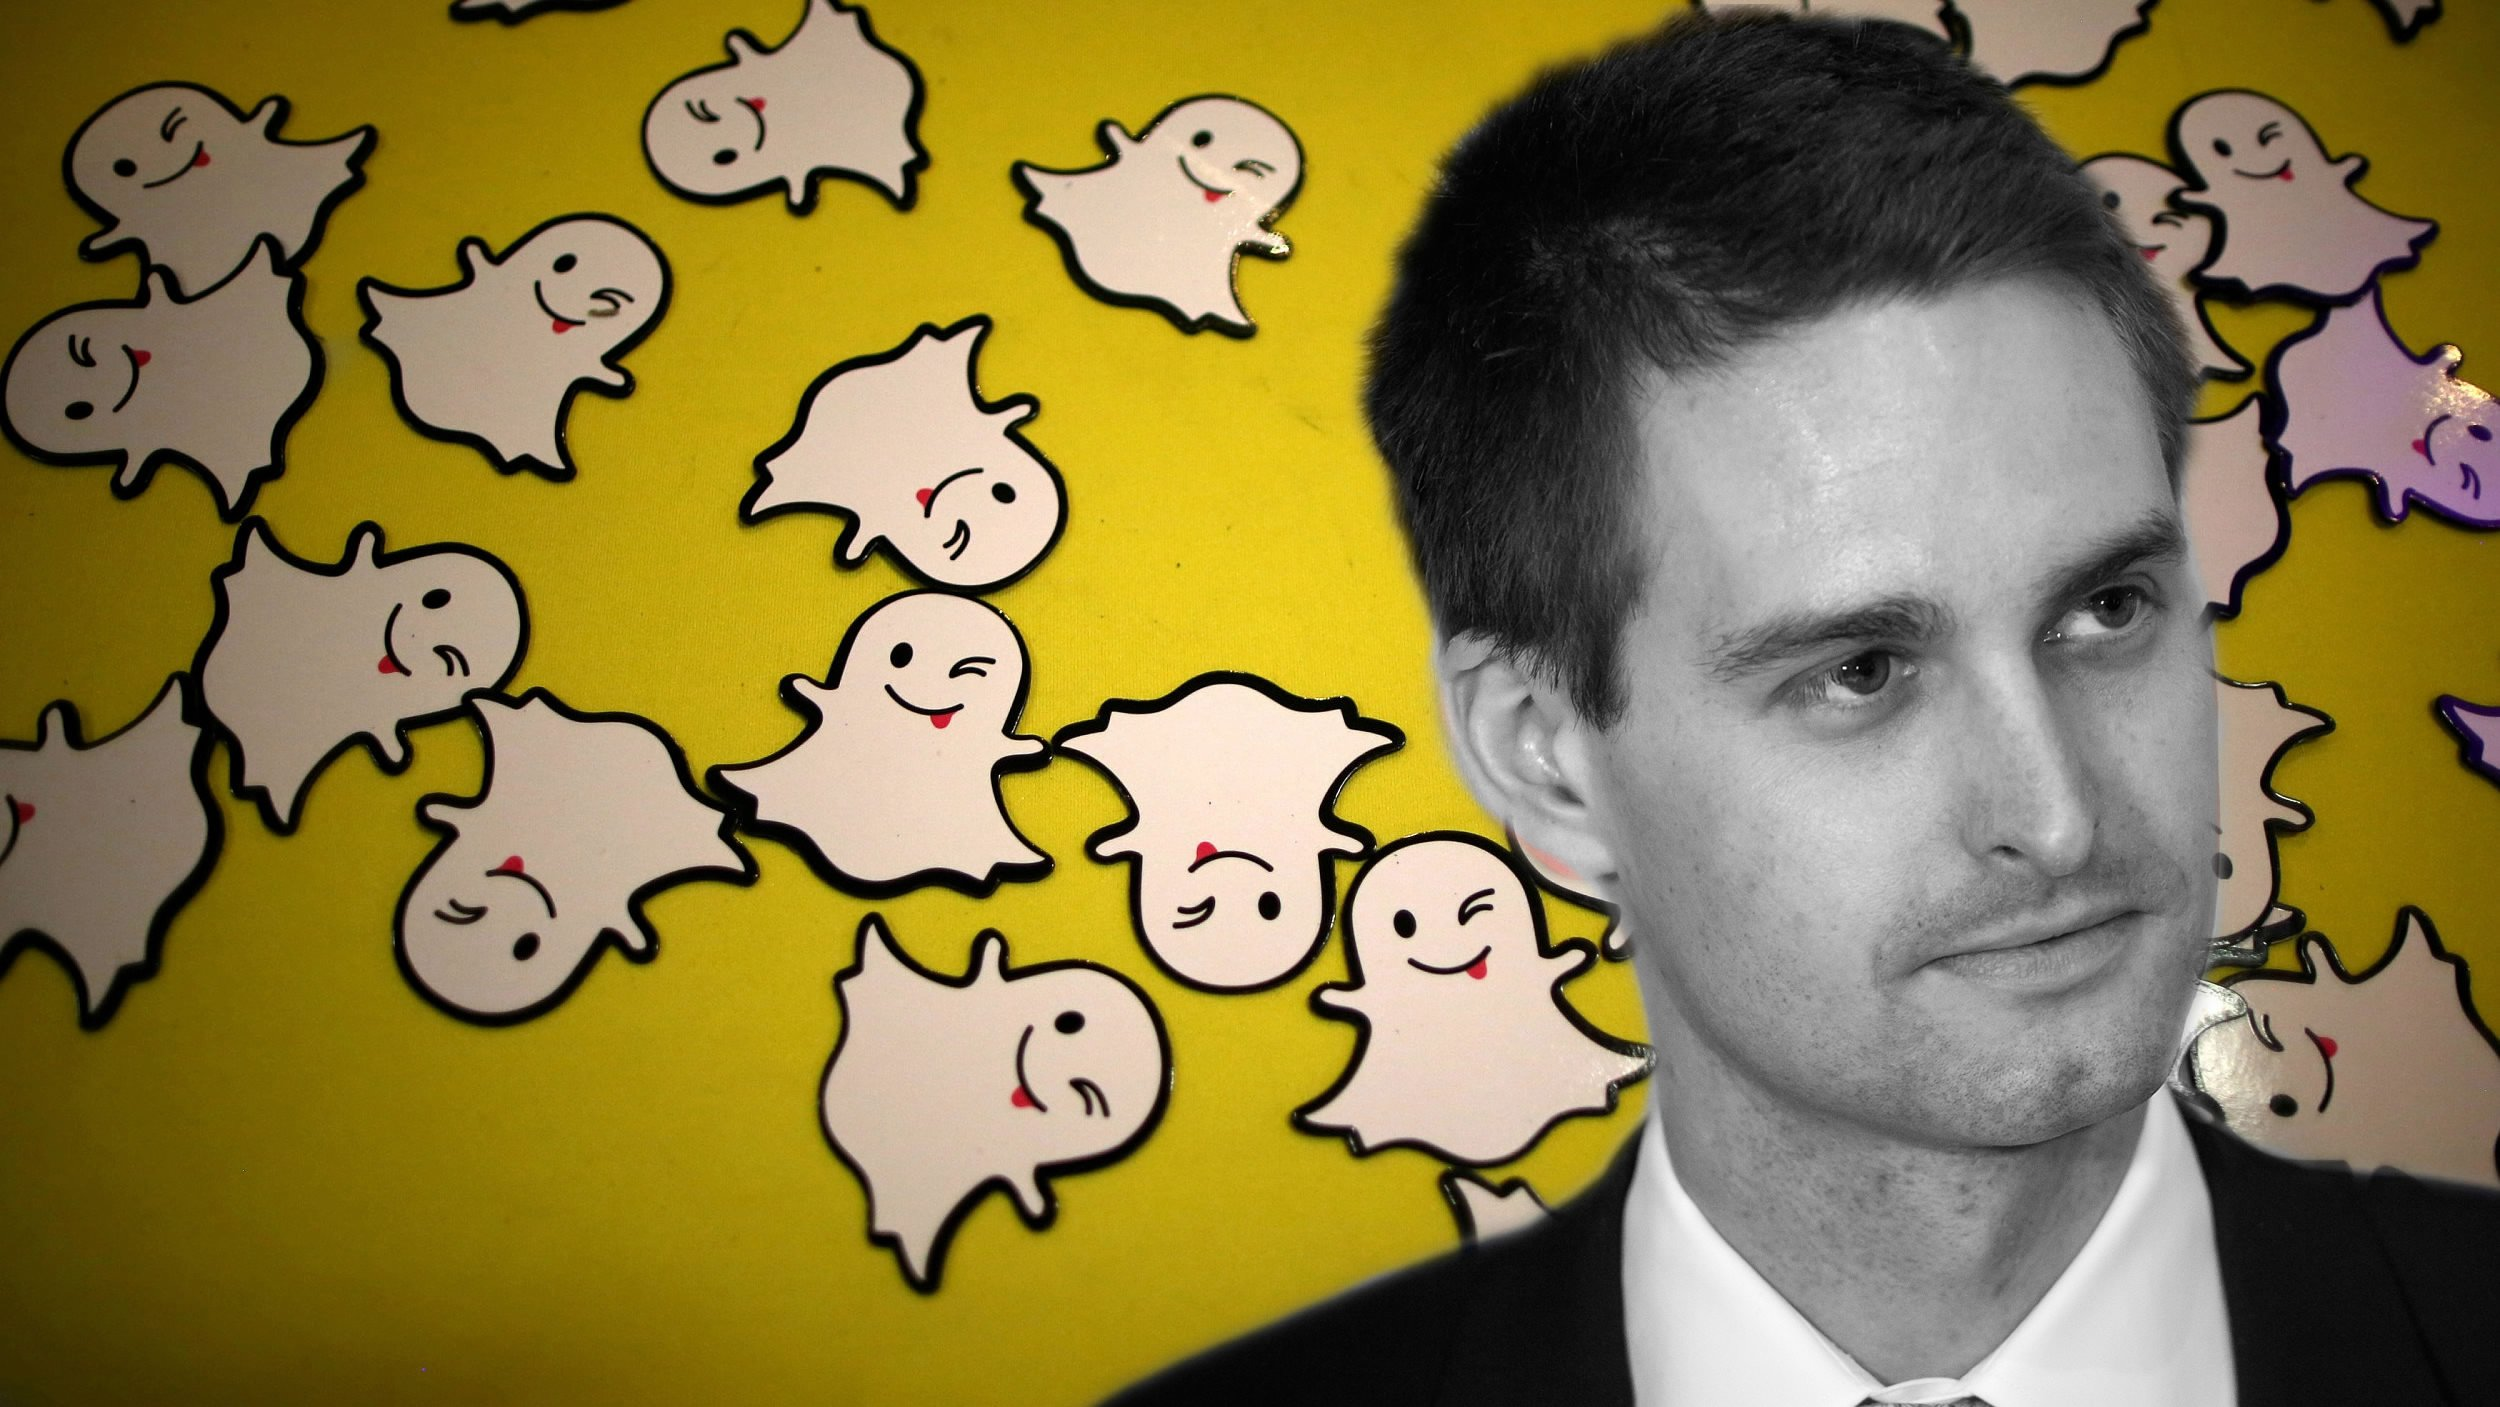 Snapchat's Evan Spiegel tops 2017 executive pay with $638 mln